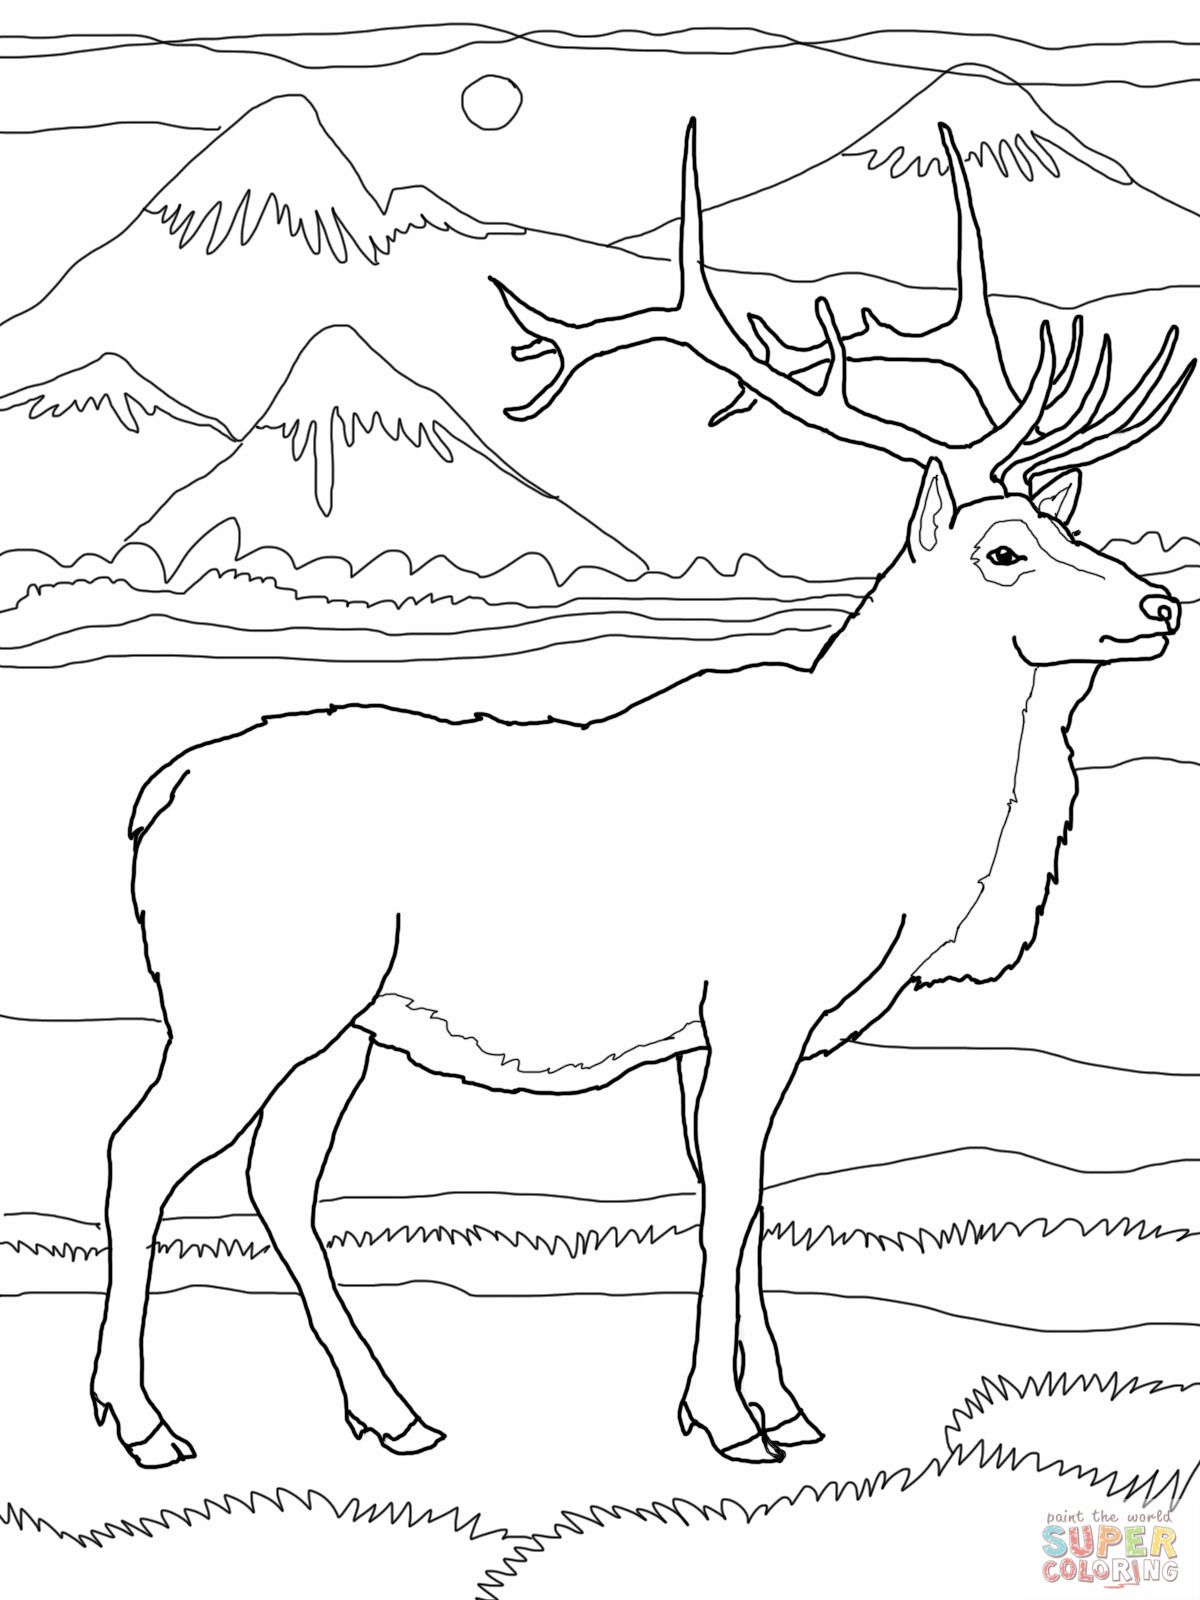 Elk coloring pages elk or wapiti coloring online super coloring